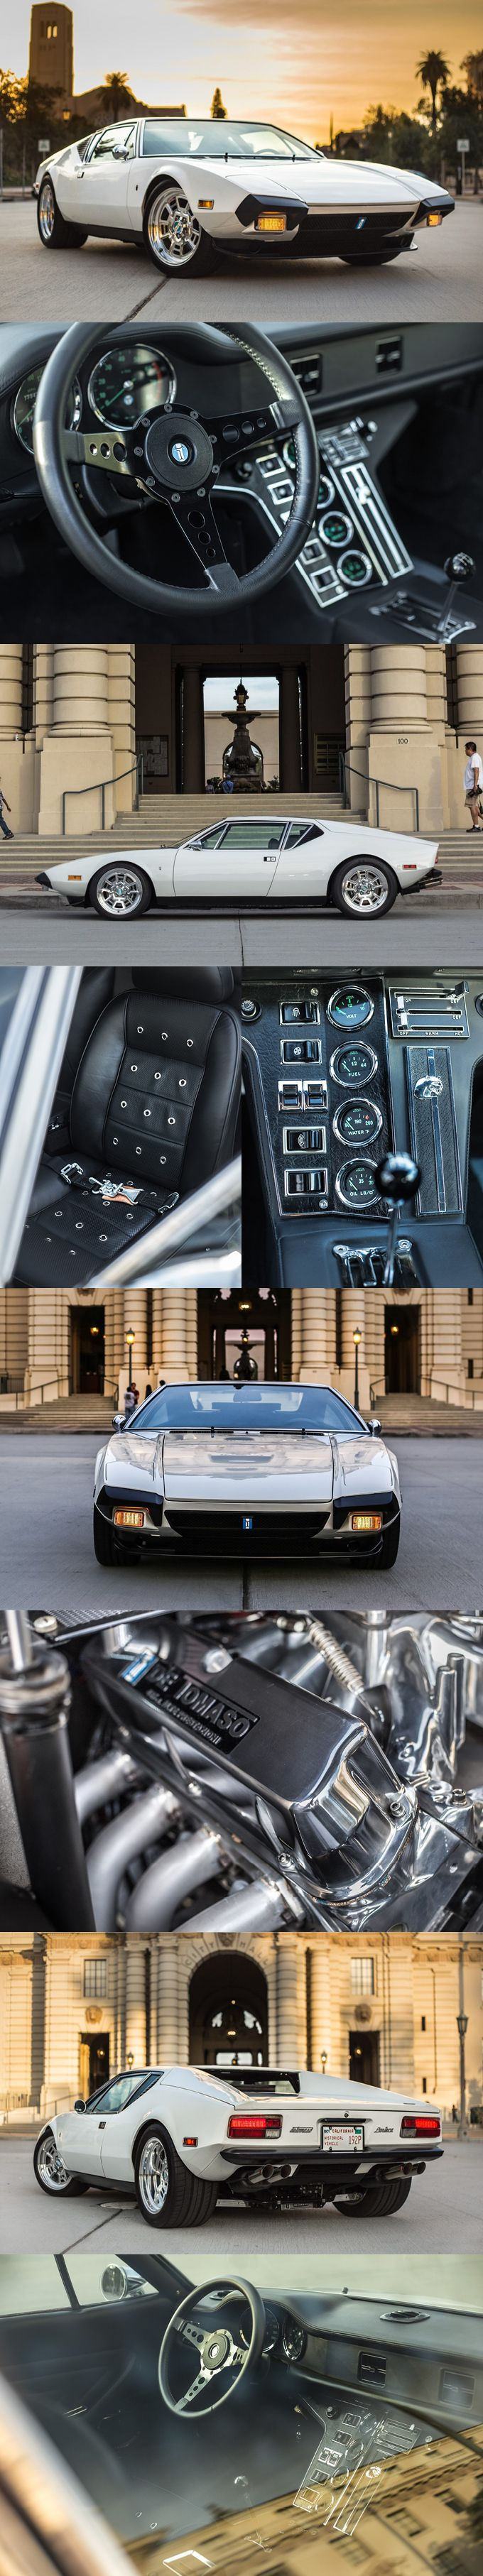 1974 De Tomaso Pantera / Tom Tjaarda at Ghia / Italy / 330hp 351 Cu in V8 / Petrolicious